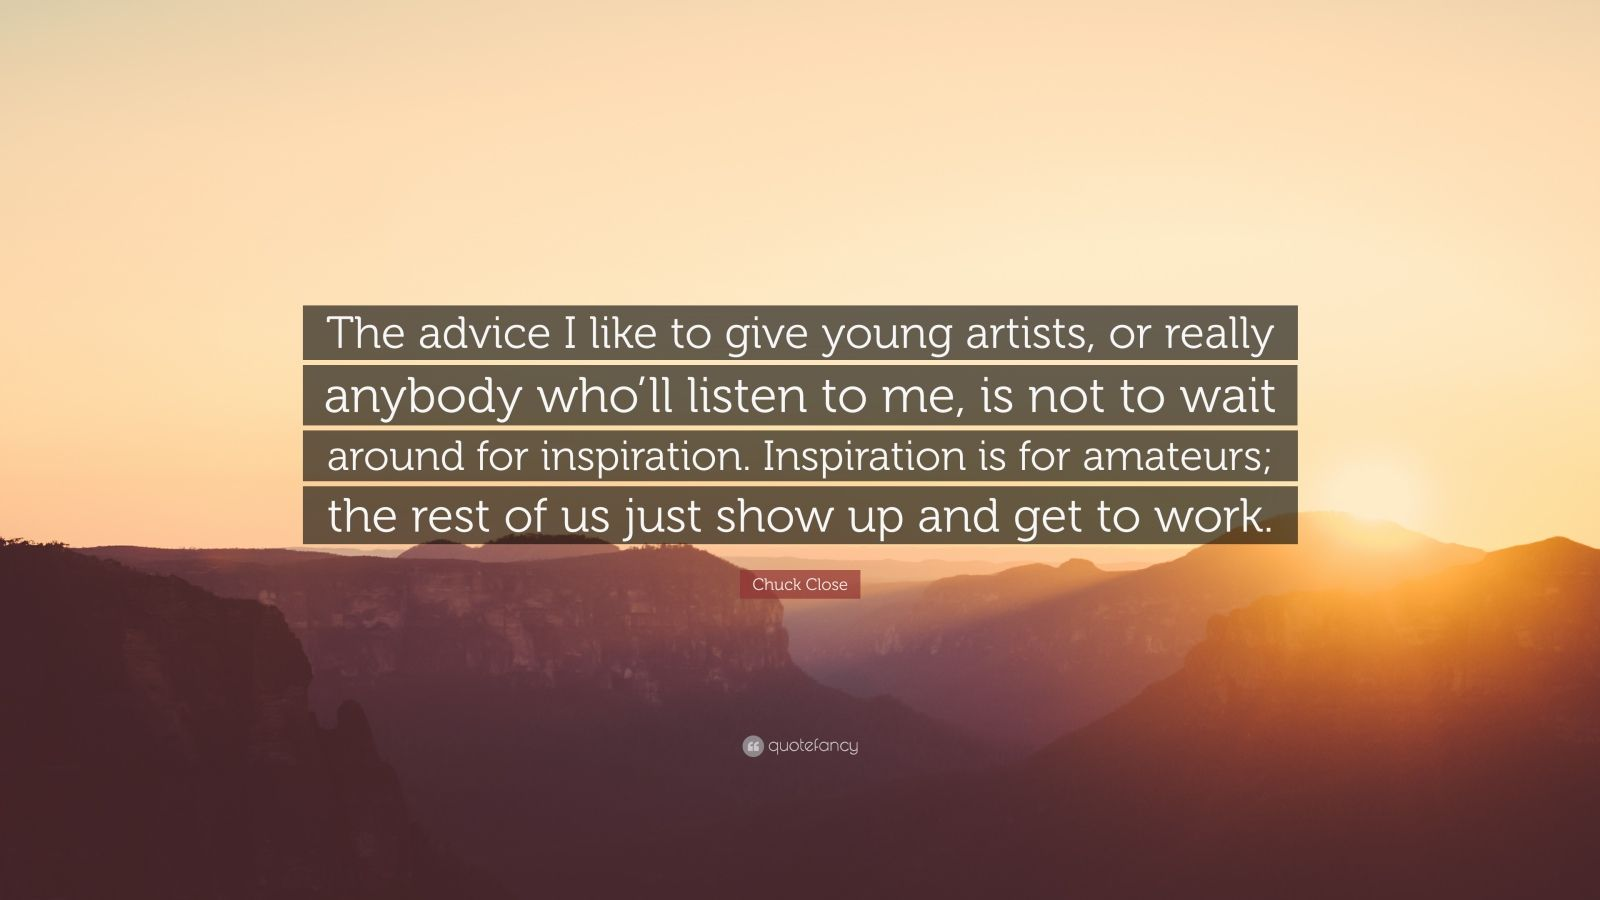 """Chuck Close Quote: """"The advice I like to give young artists, or really anybody who'll listen to me, is not to wait around for inspiration. Inspiration is for amateurs; the rest of us just show up and get to work."""""""